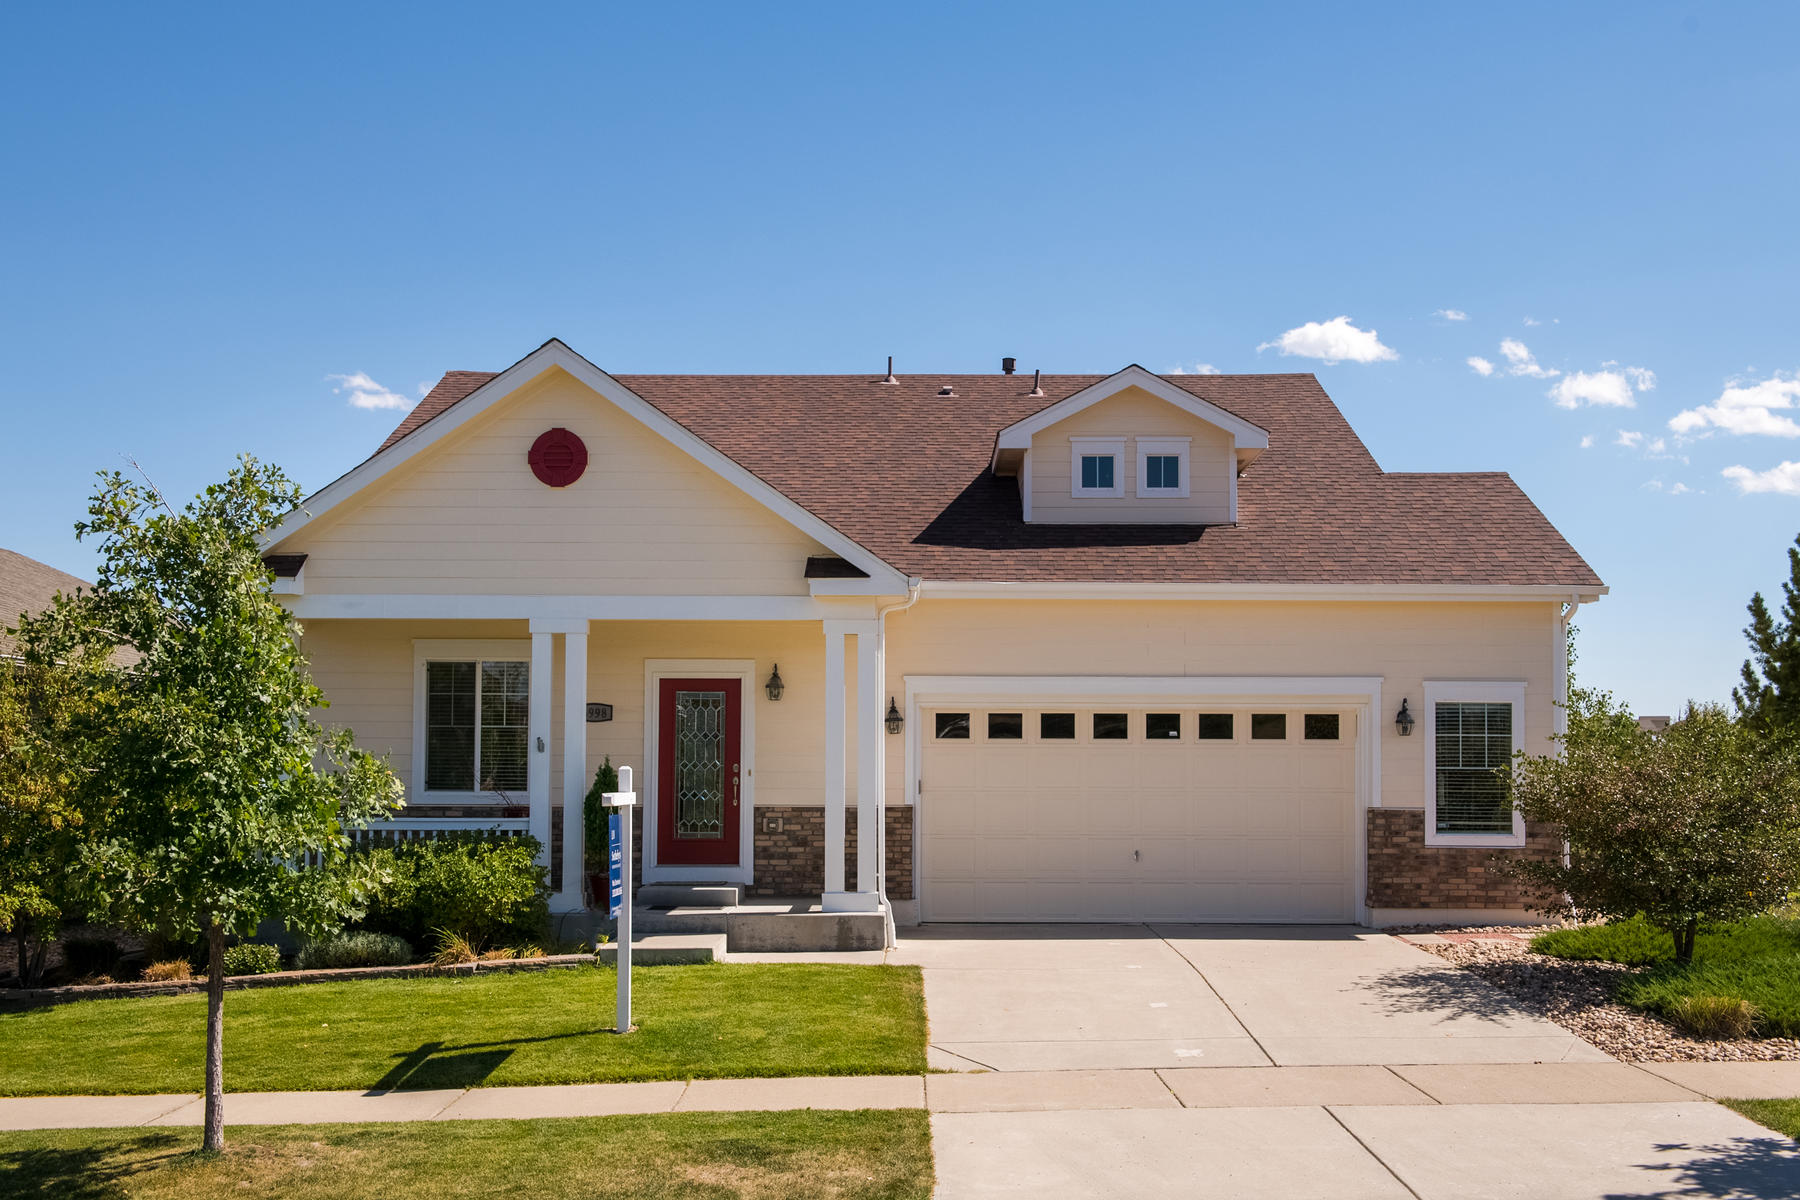 Single Family Home for Active at Rare Efficient Single Story Style Living 6998 S Riverwood Way Aurora, Colorado 80016 United States